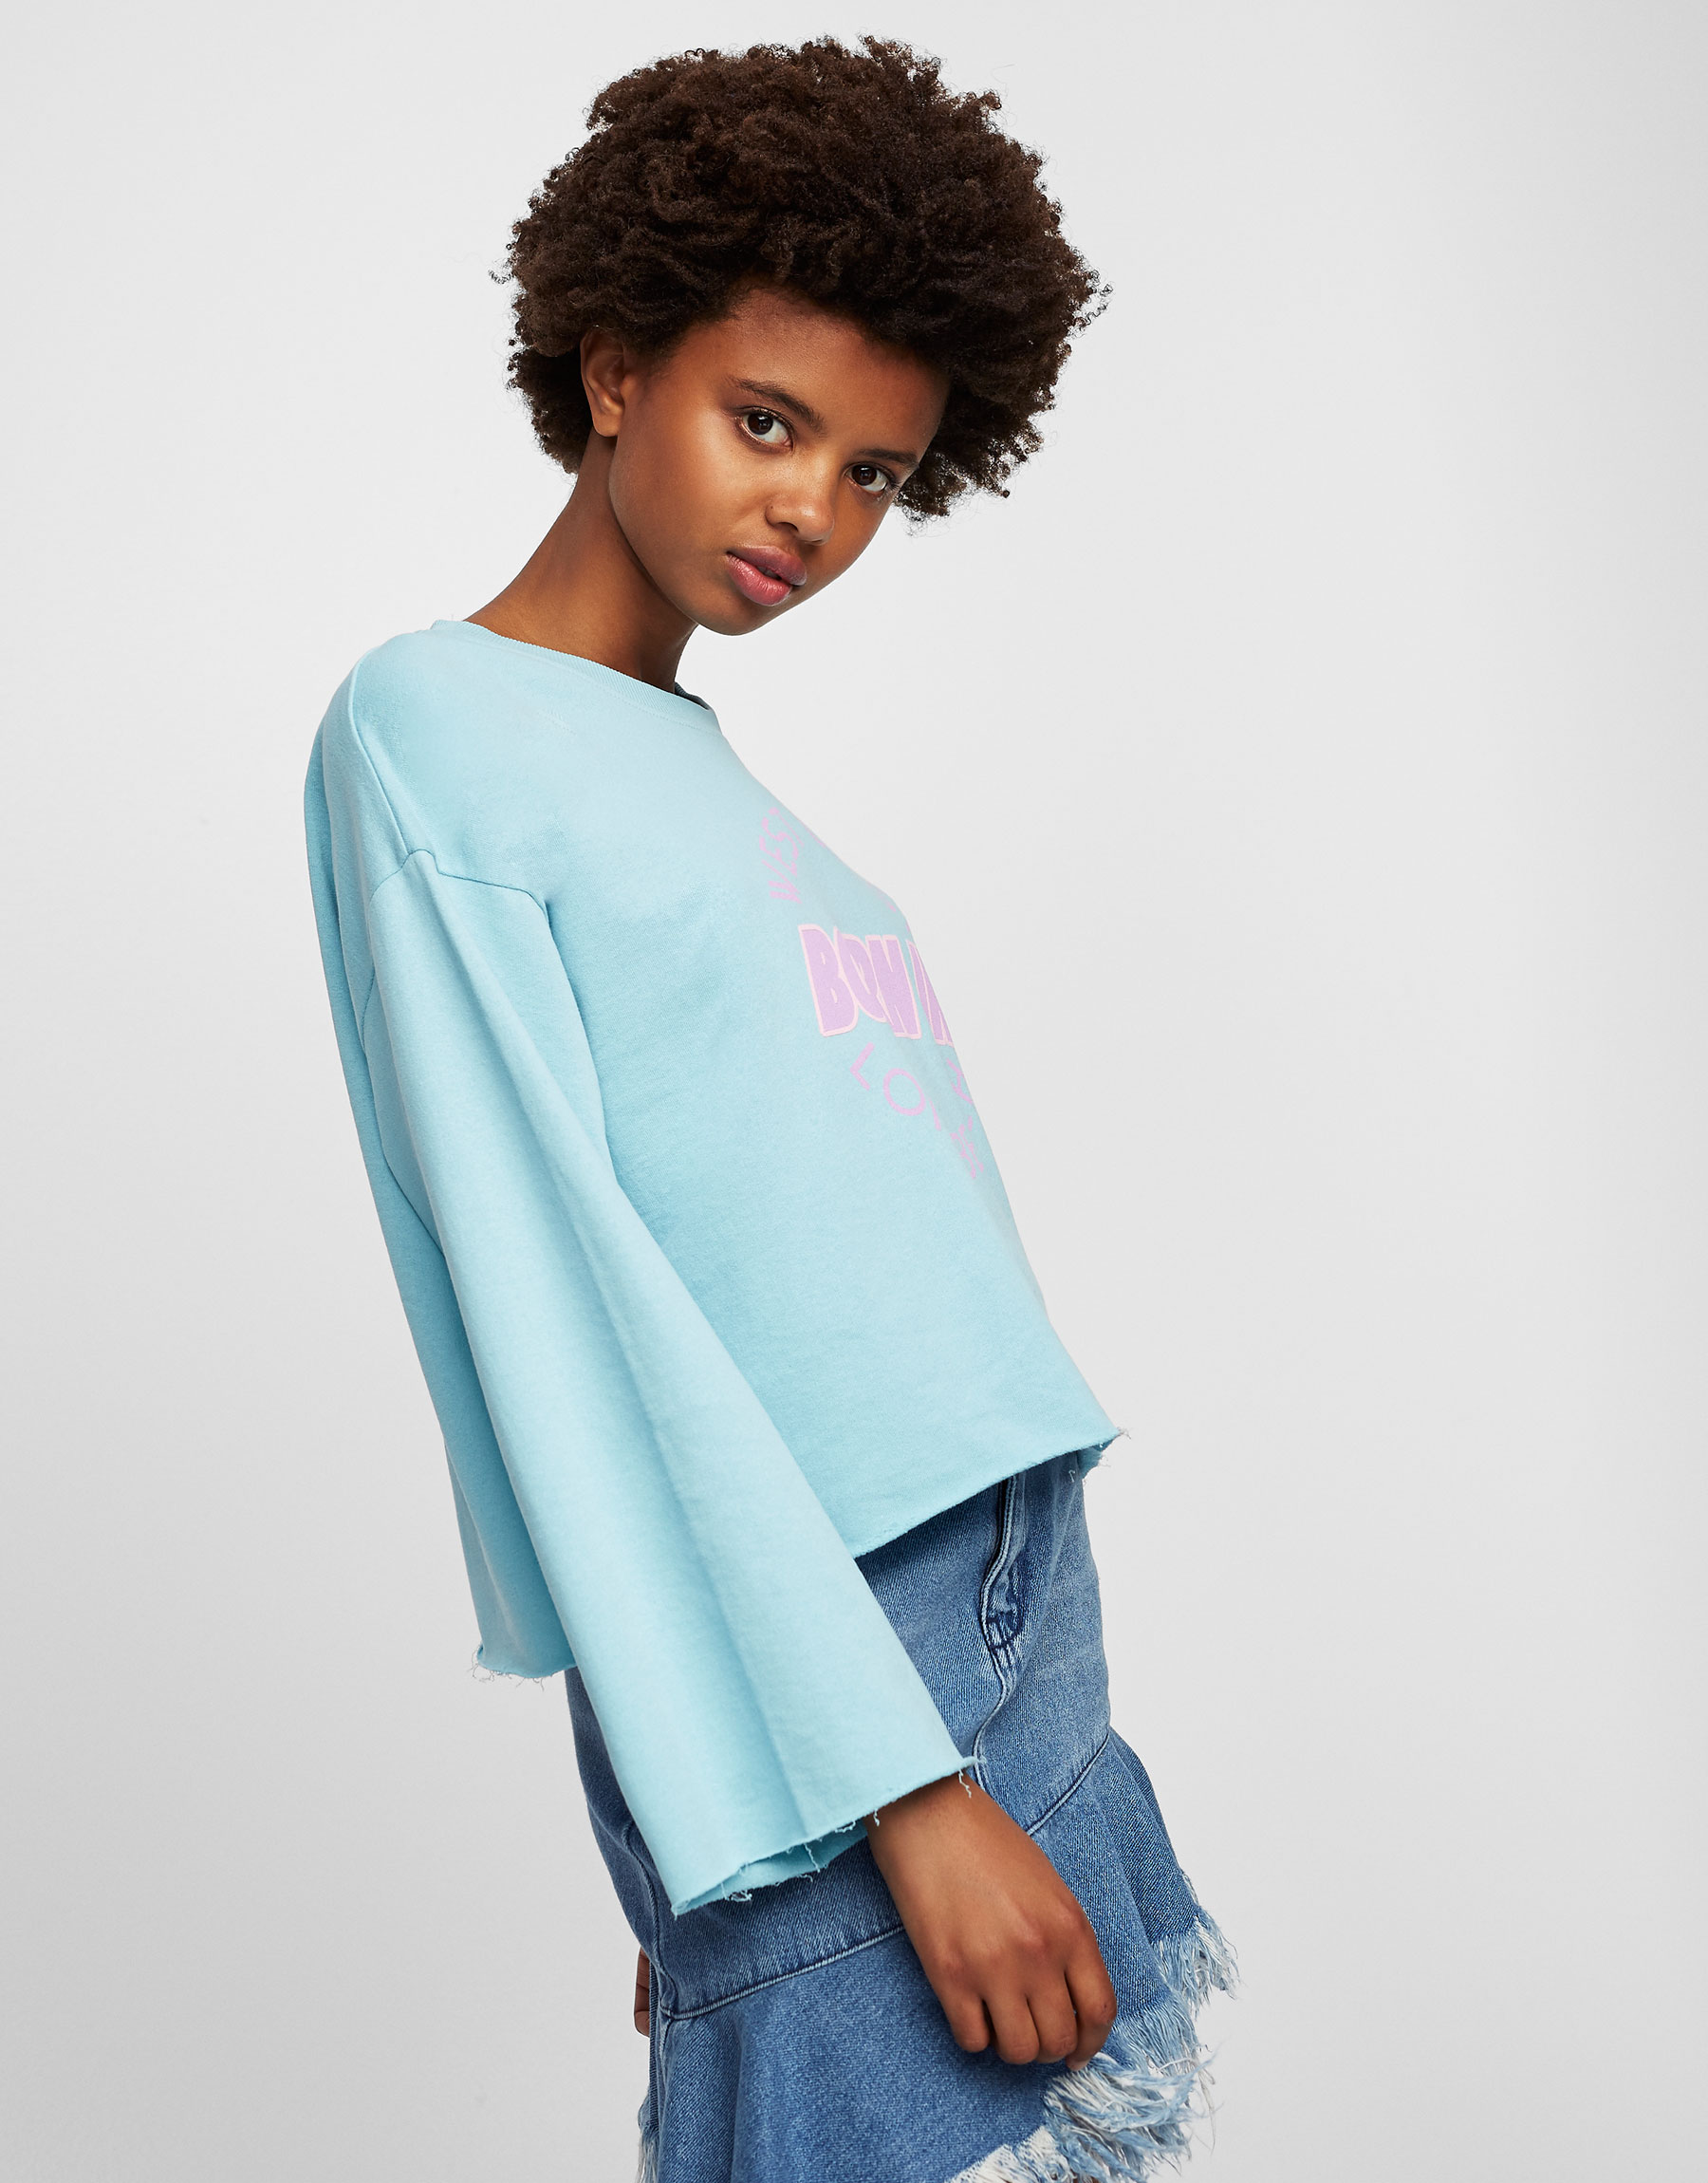 Colourful cropped sweatshirt with slogan